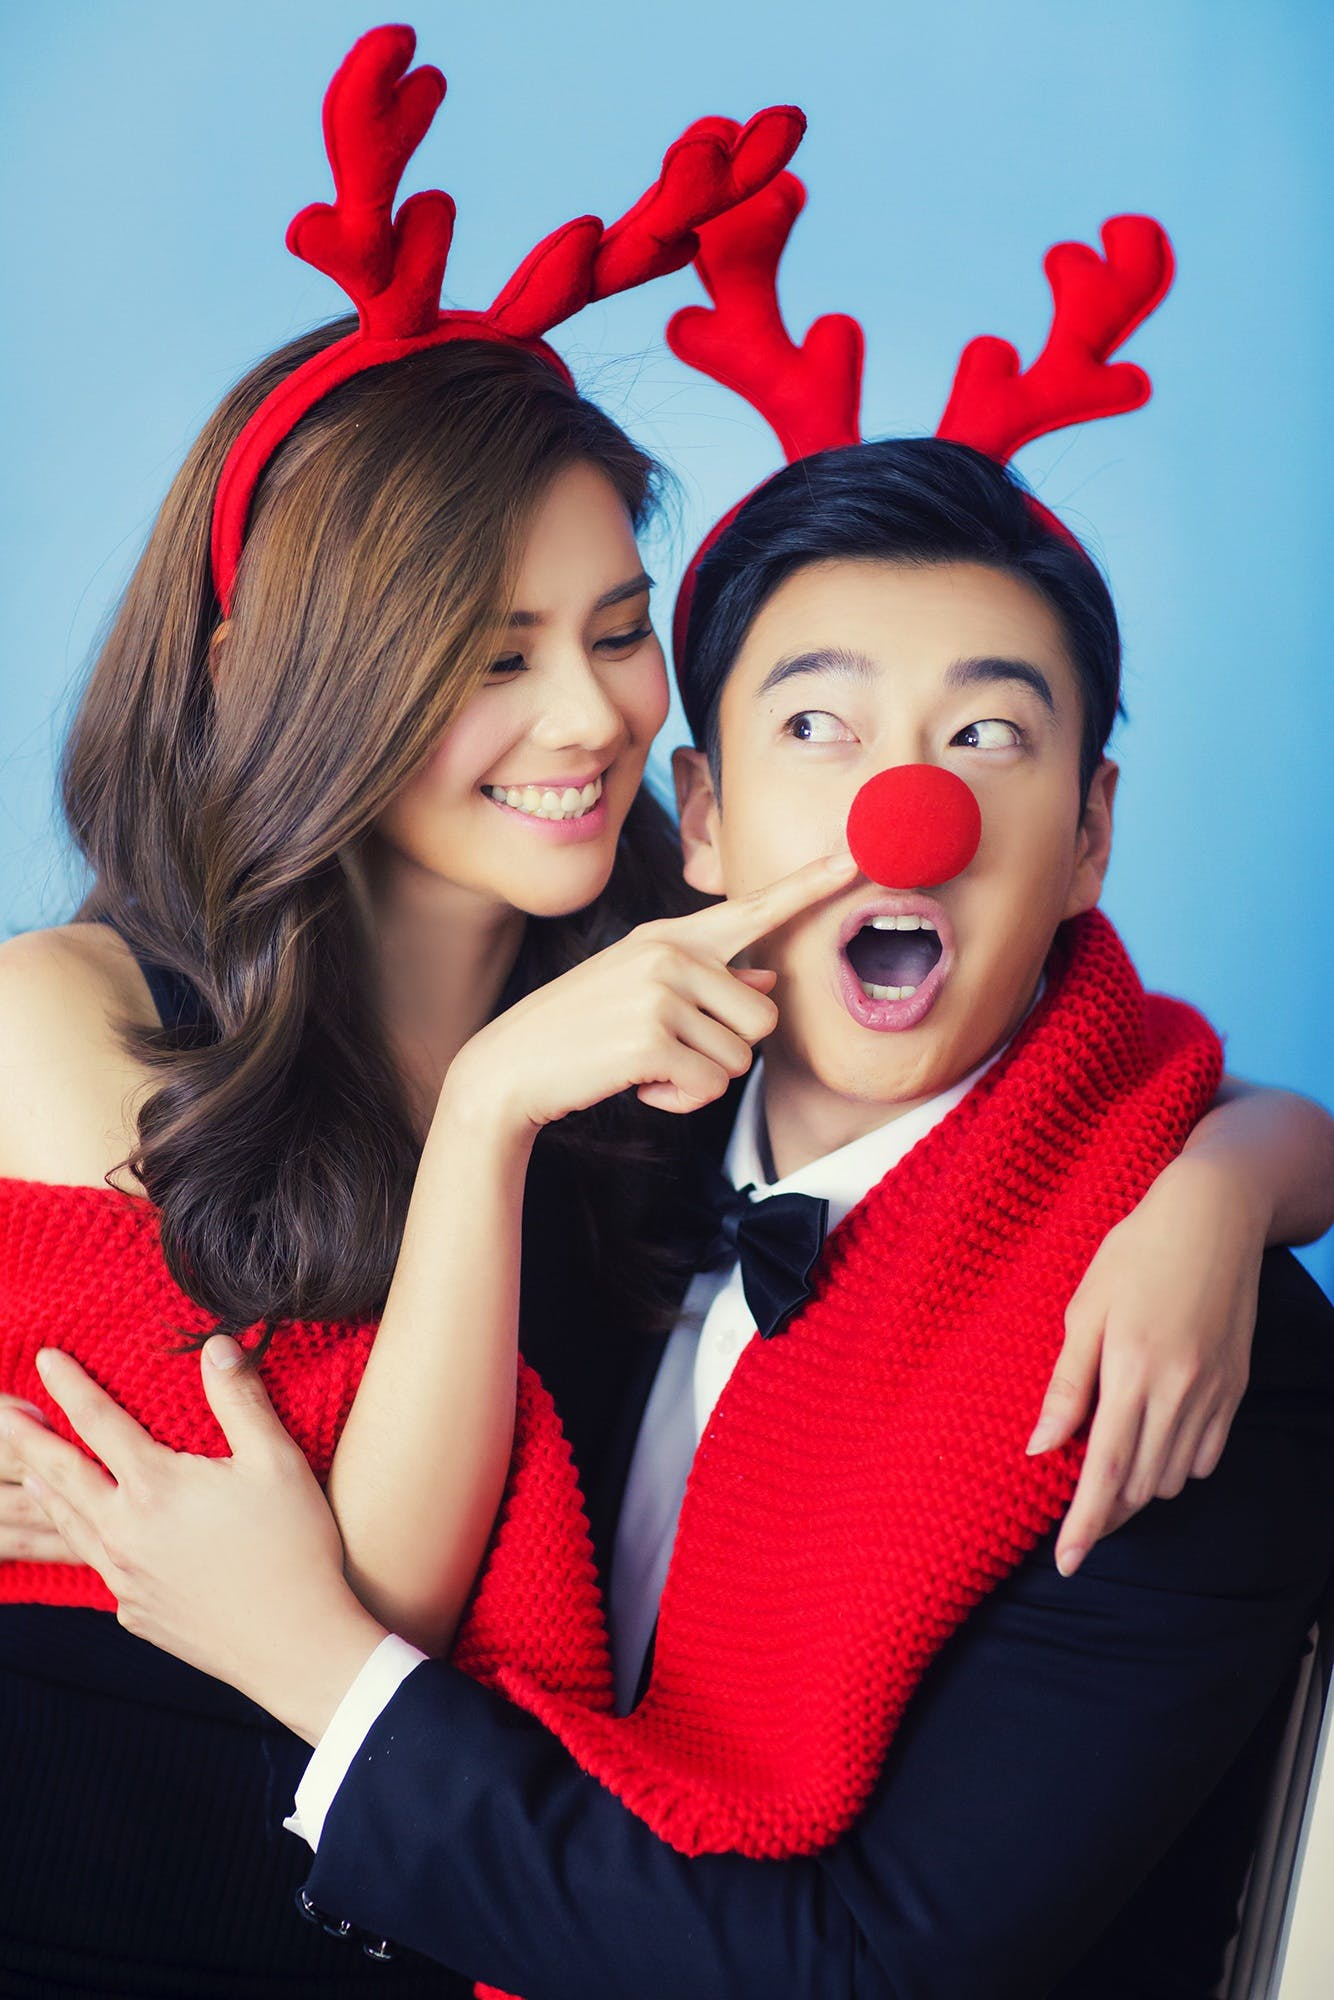 Woman Pin Pointing Man's Red Reindeer Nose